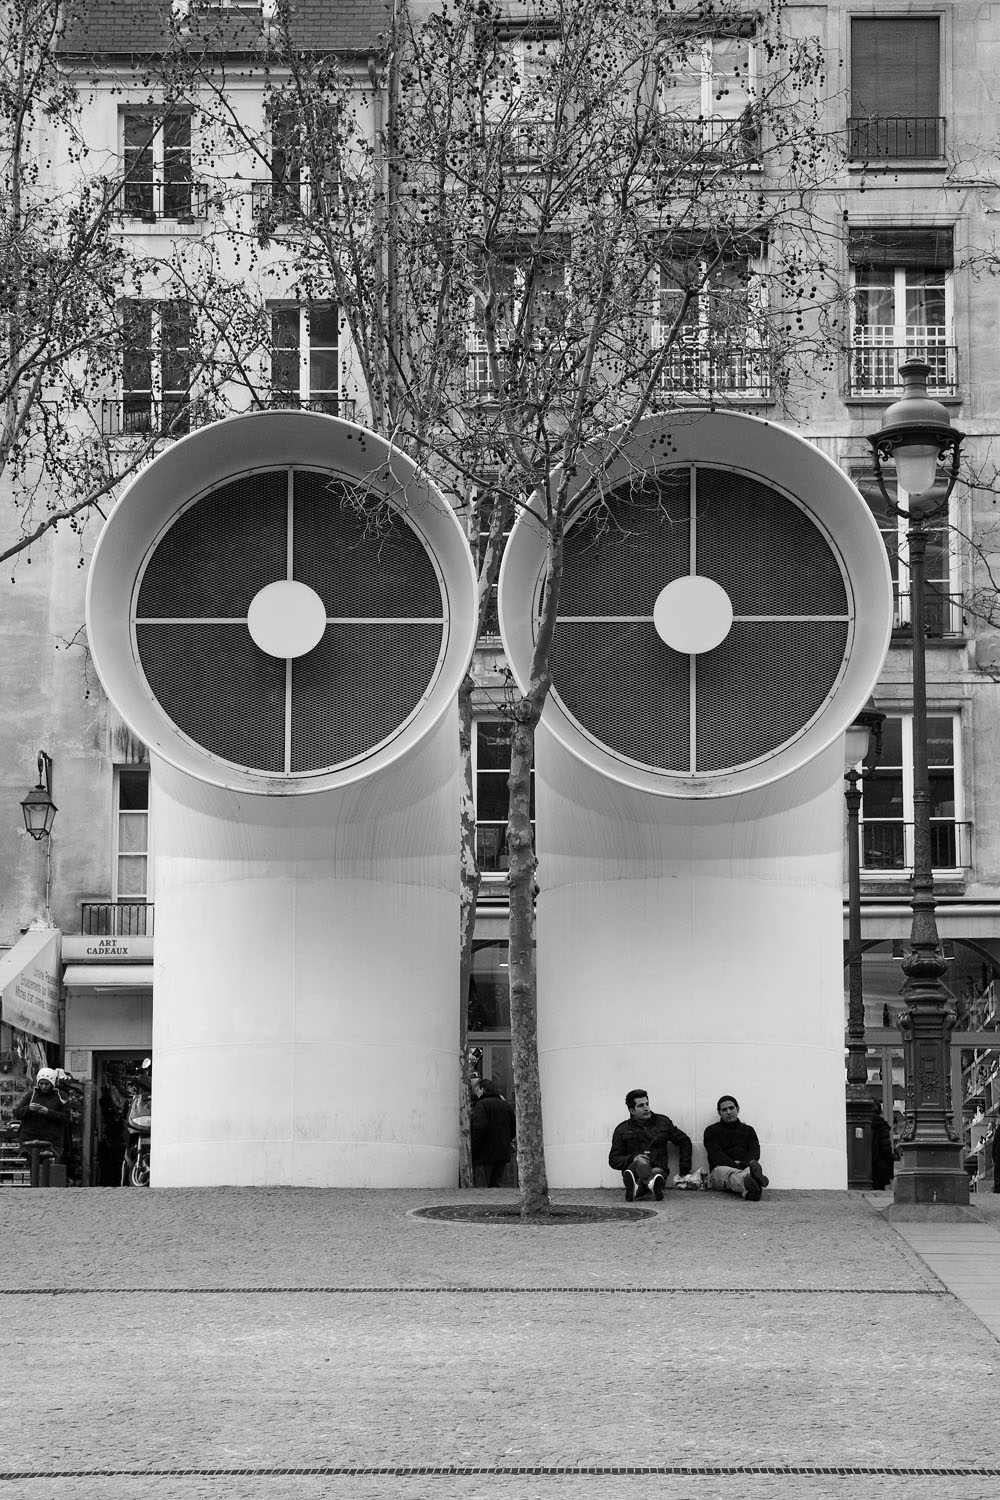 Pompidou Center - Paris, France